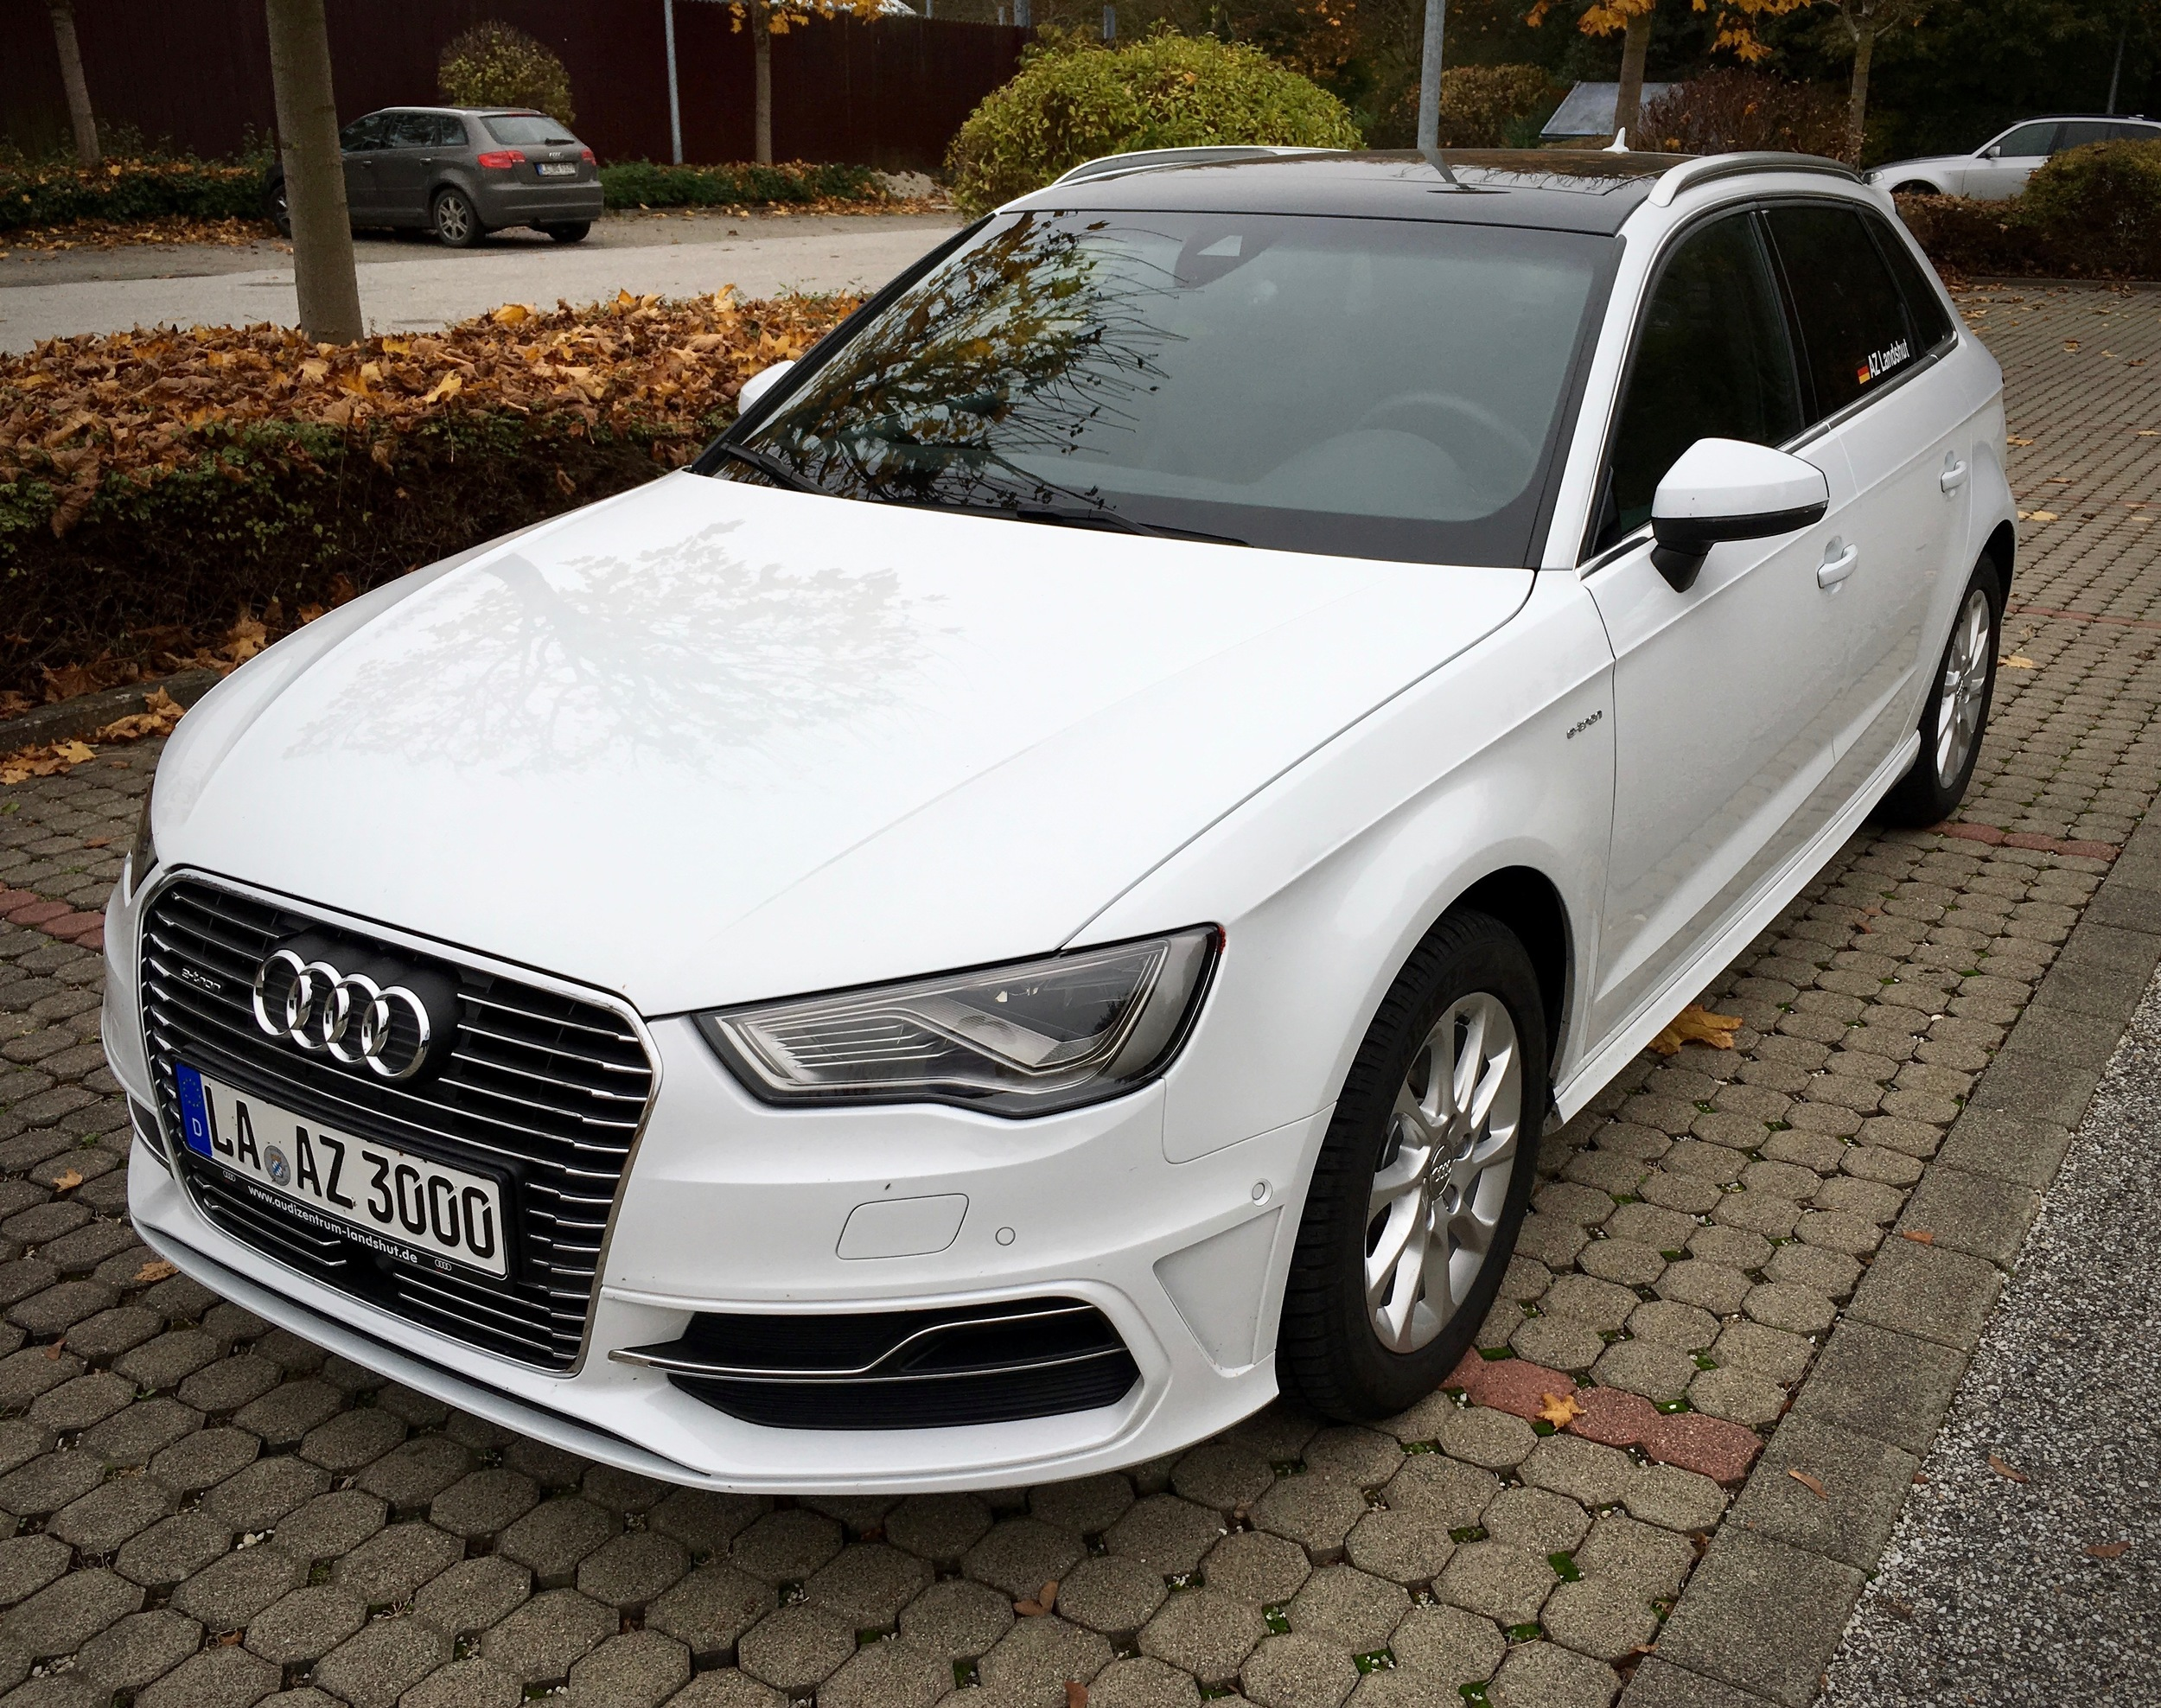 Still an A3, still good looking, with subtle design cues for the e-tron